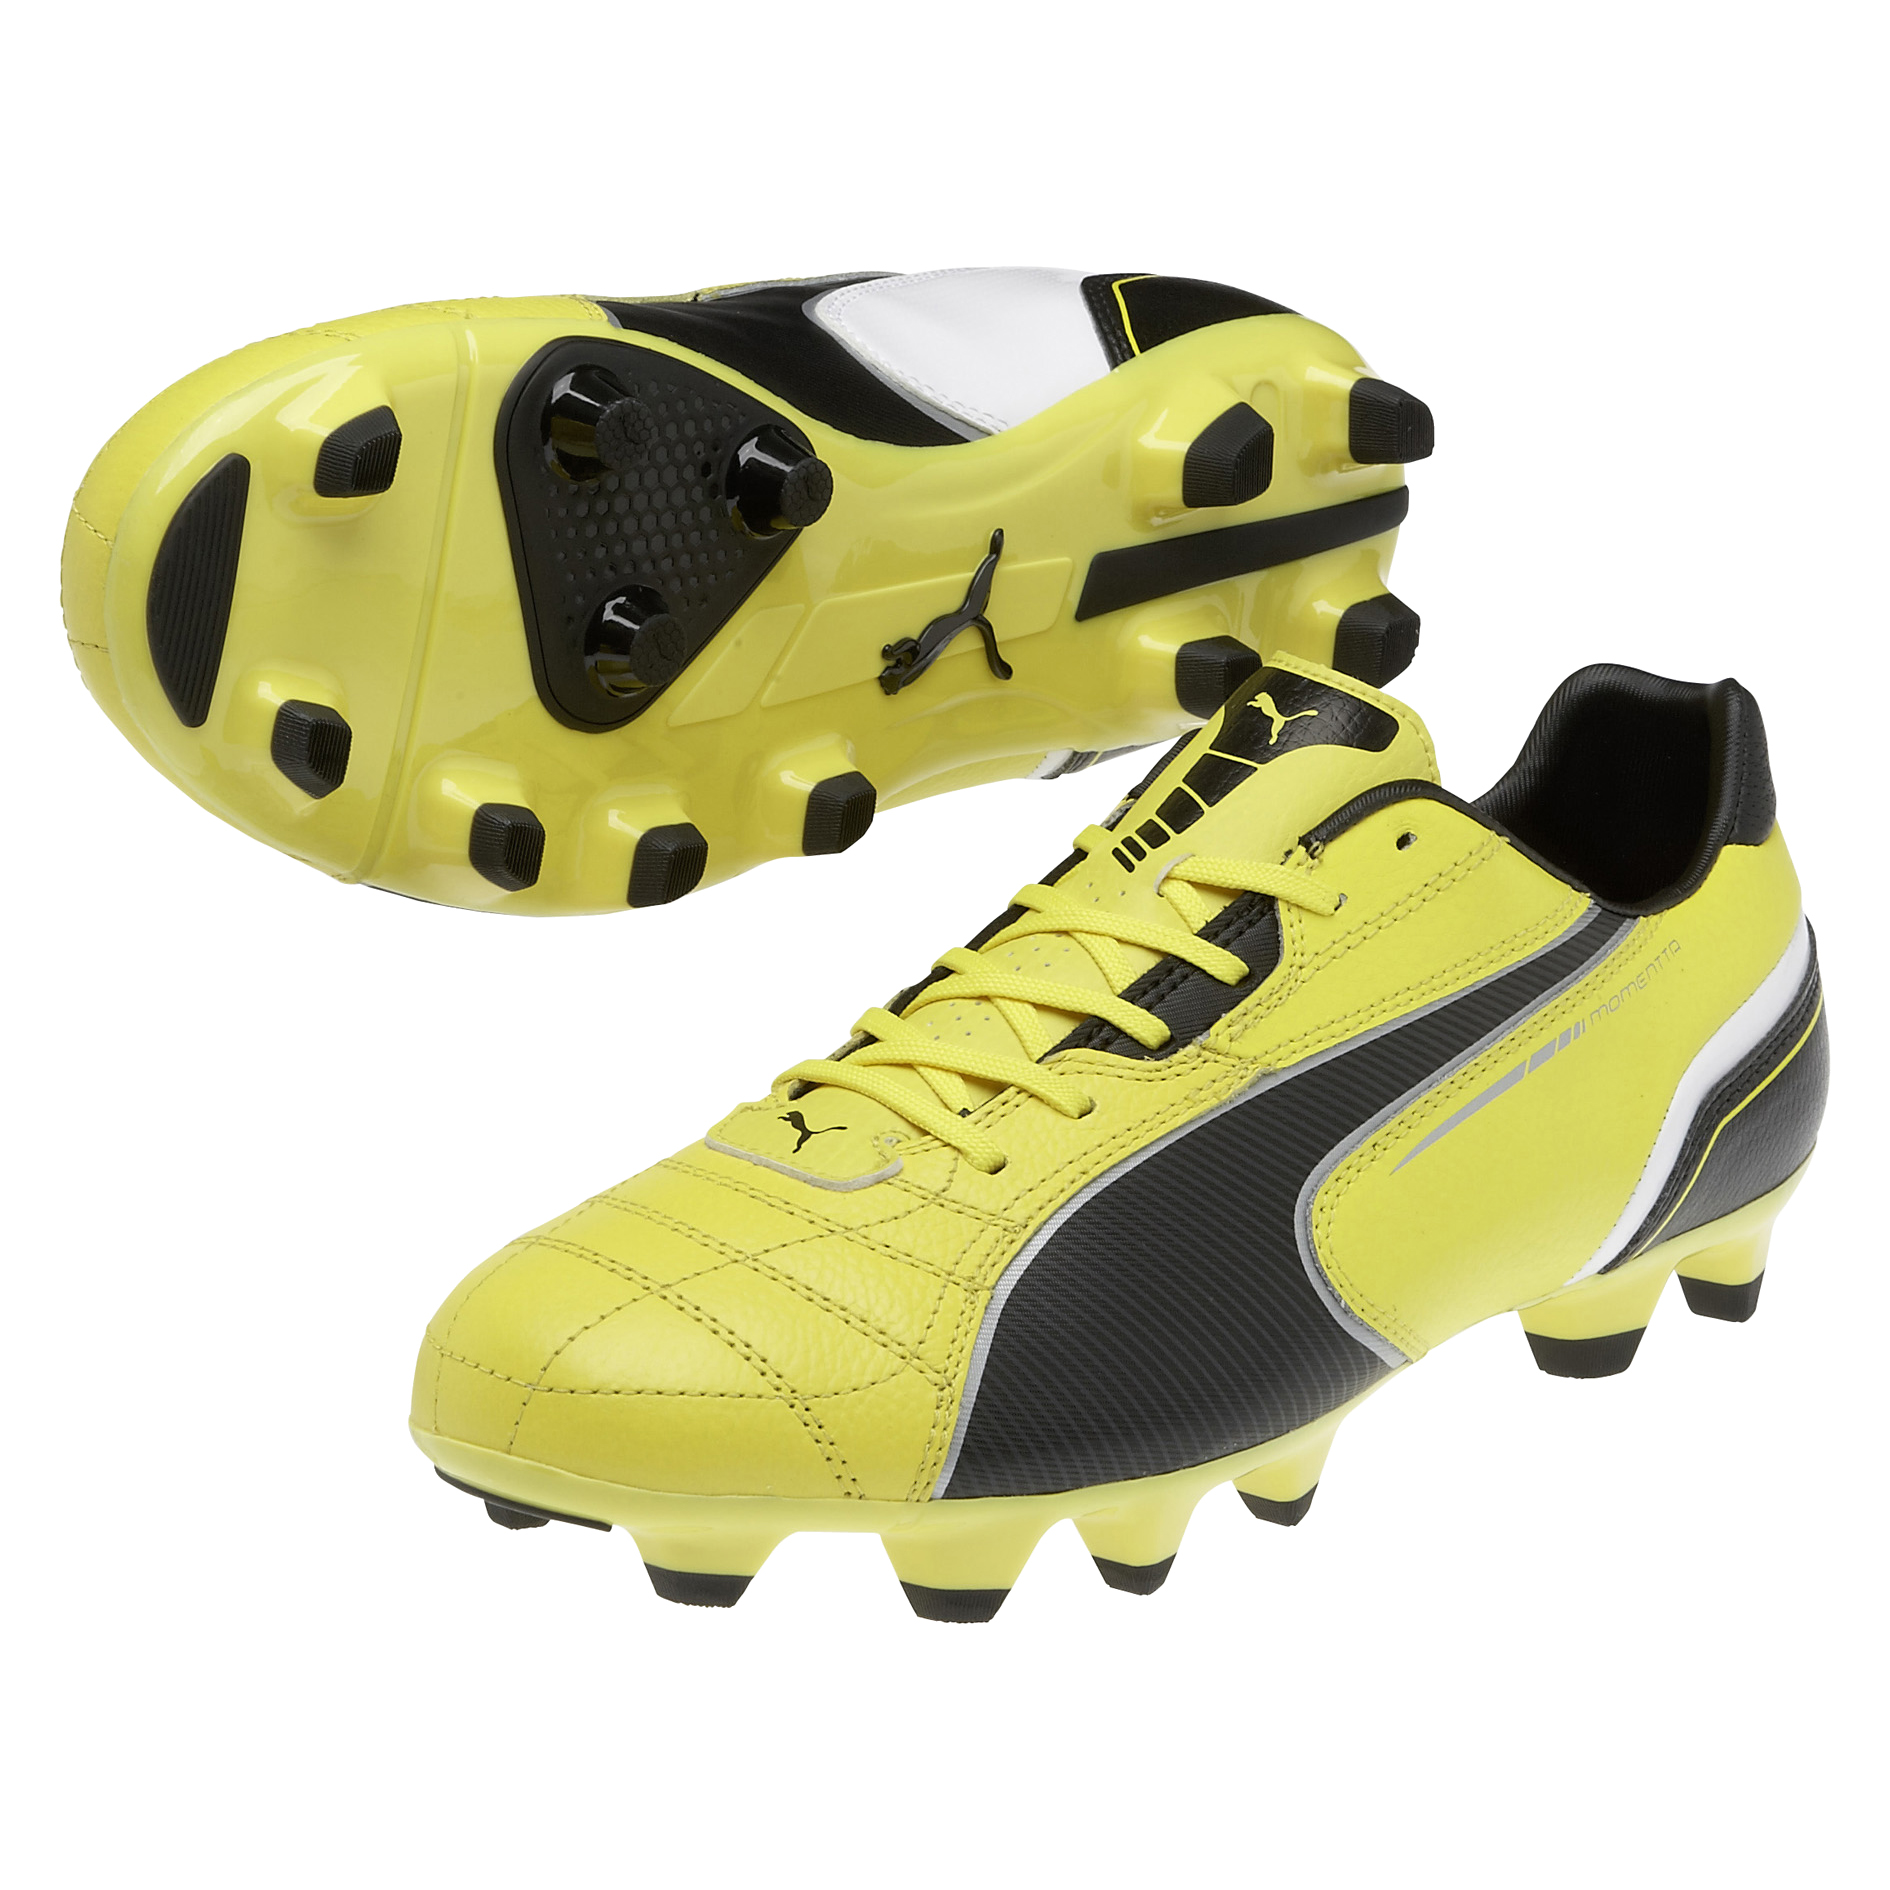 Puma Momentta Firm Ground Football Boots - Blazing Yellow/Black/White